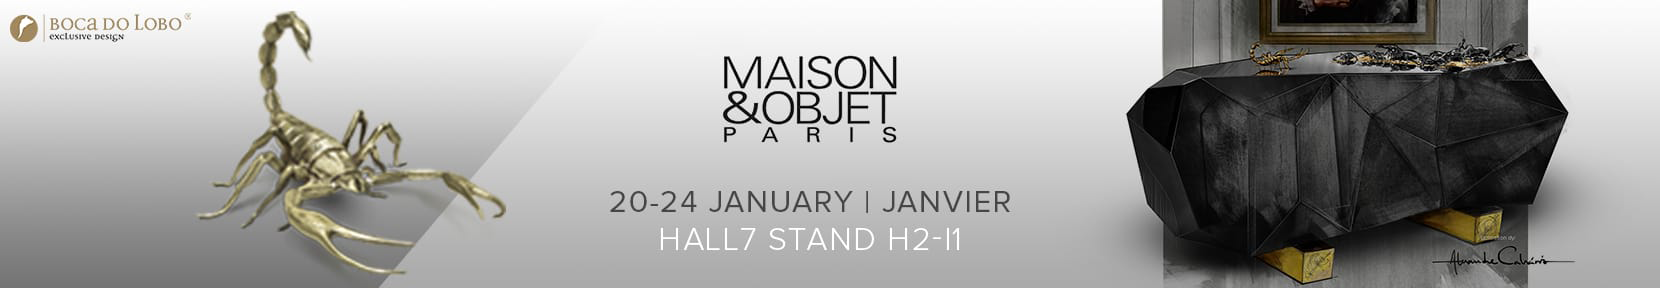 maison et objet MAISON ET OBJET 2017: EXPLORE THE WORLD OF LIGHTING BY LUXURY BRANDS banner blogs M O 2017